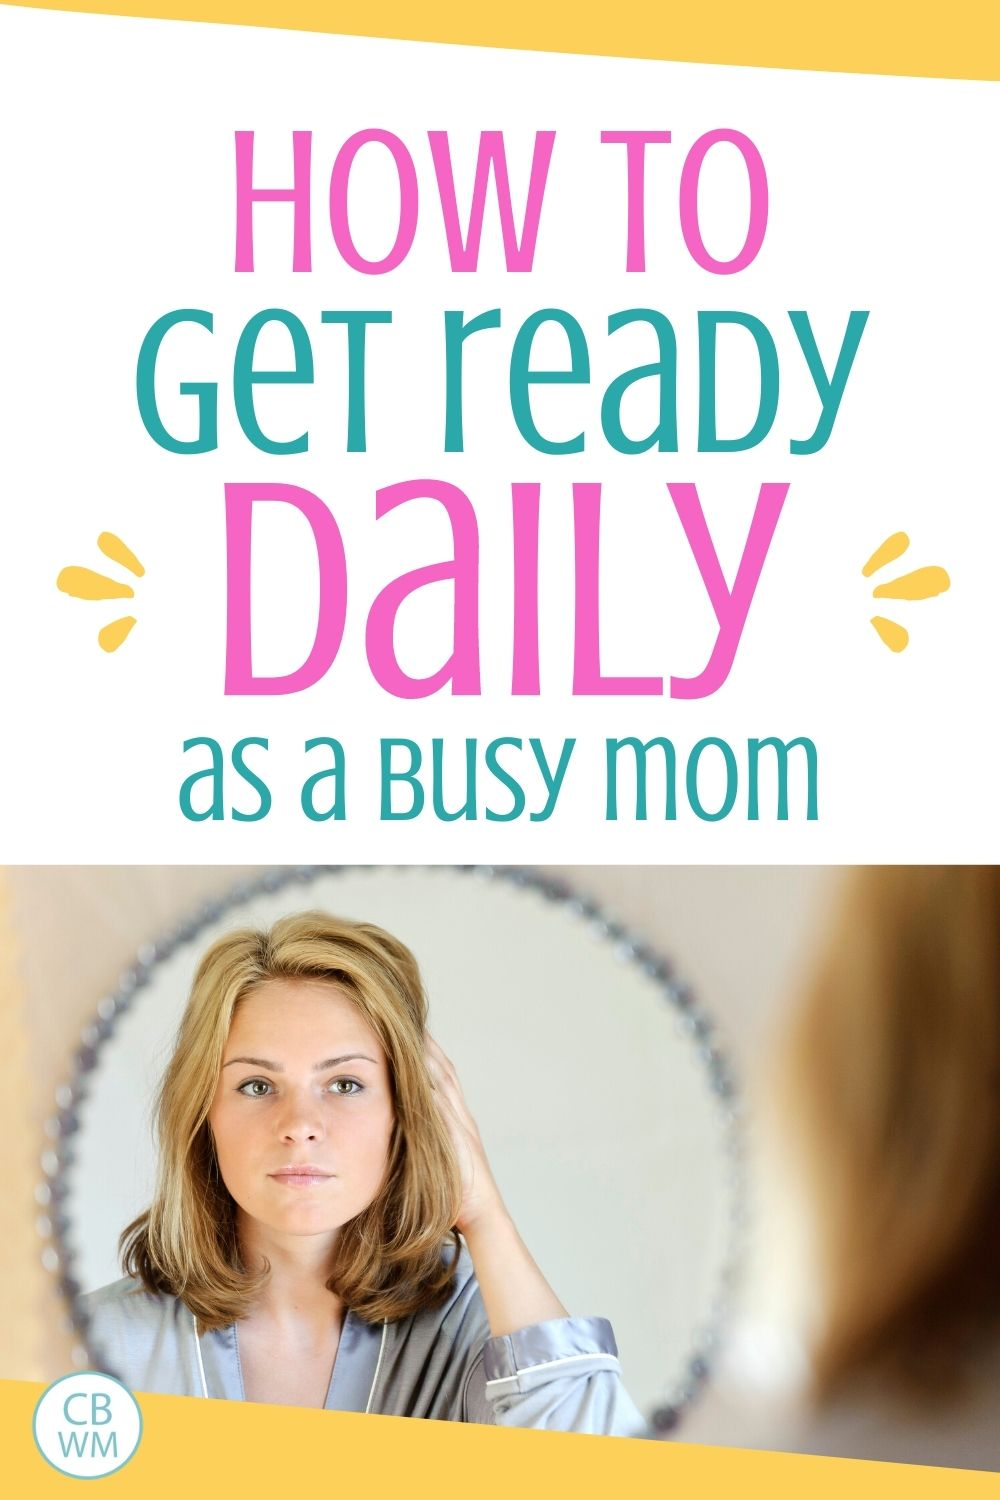 Get ready daily